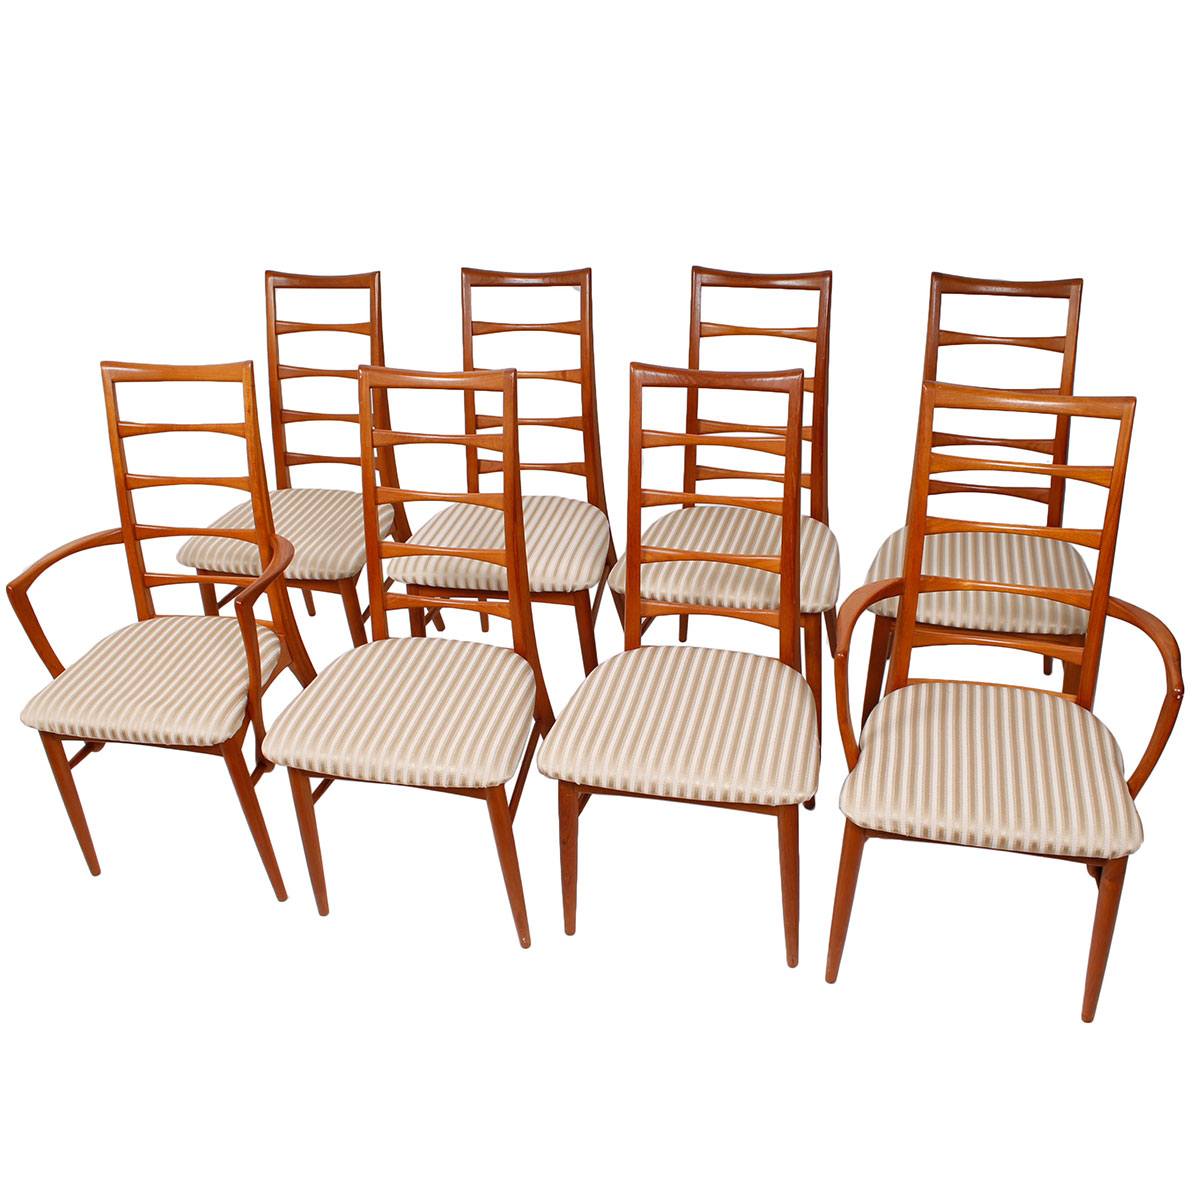 8 Koefoeds Hornslet (2 Arm 6 Side) Teak Dining Chairs